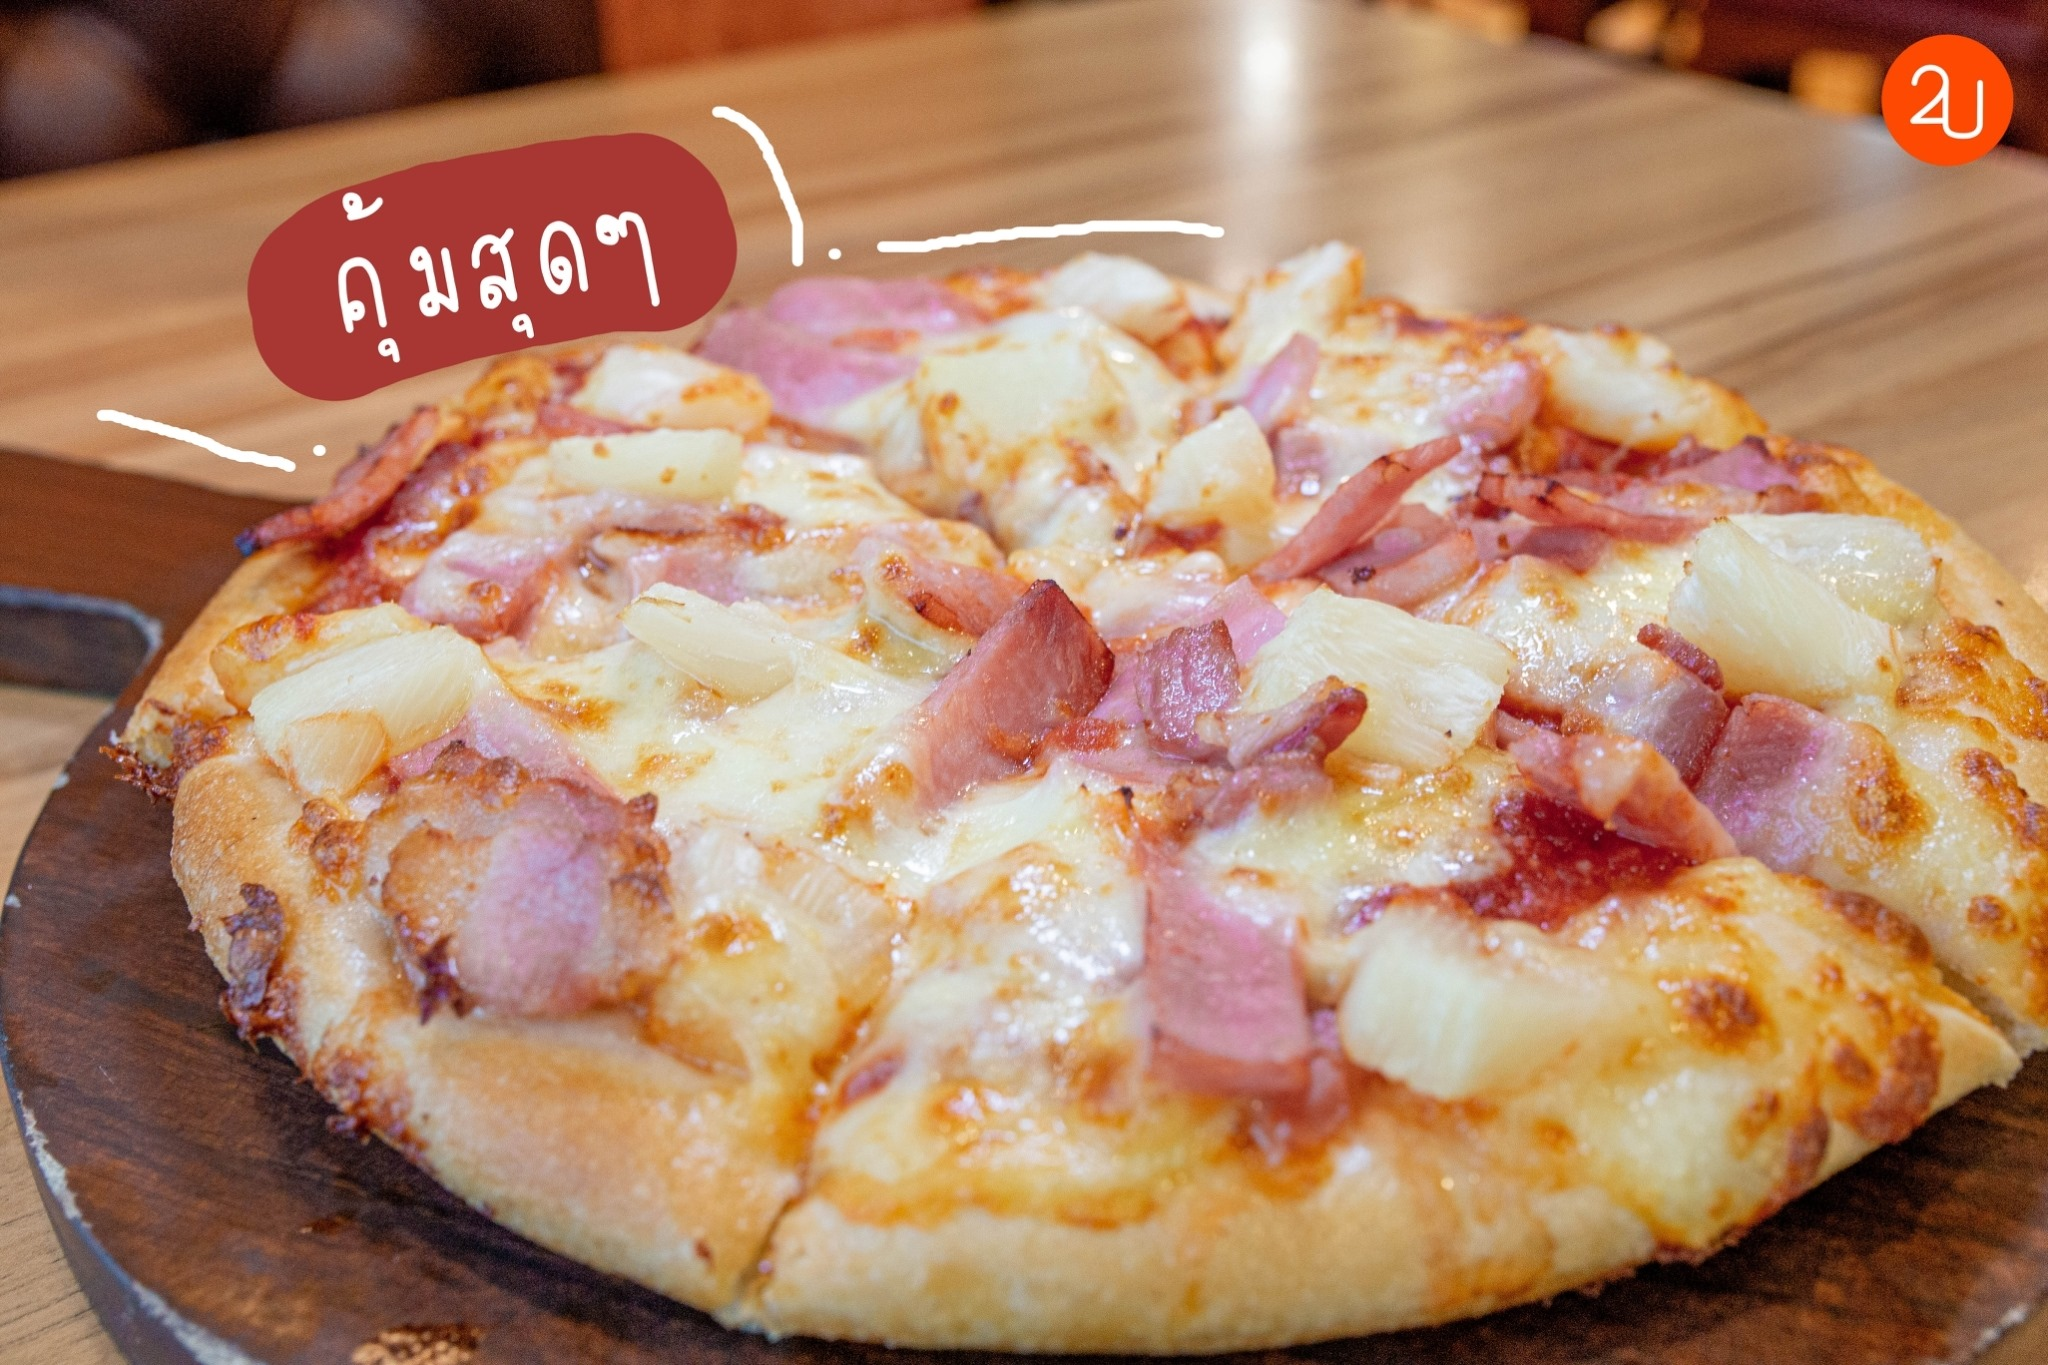 Promotion The Pizza Company Buy 1 get free 1